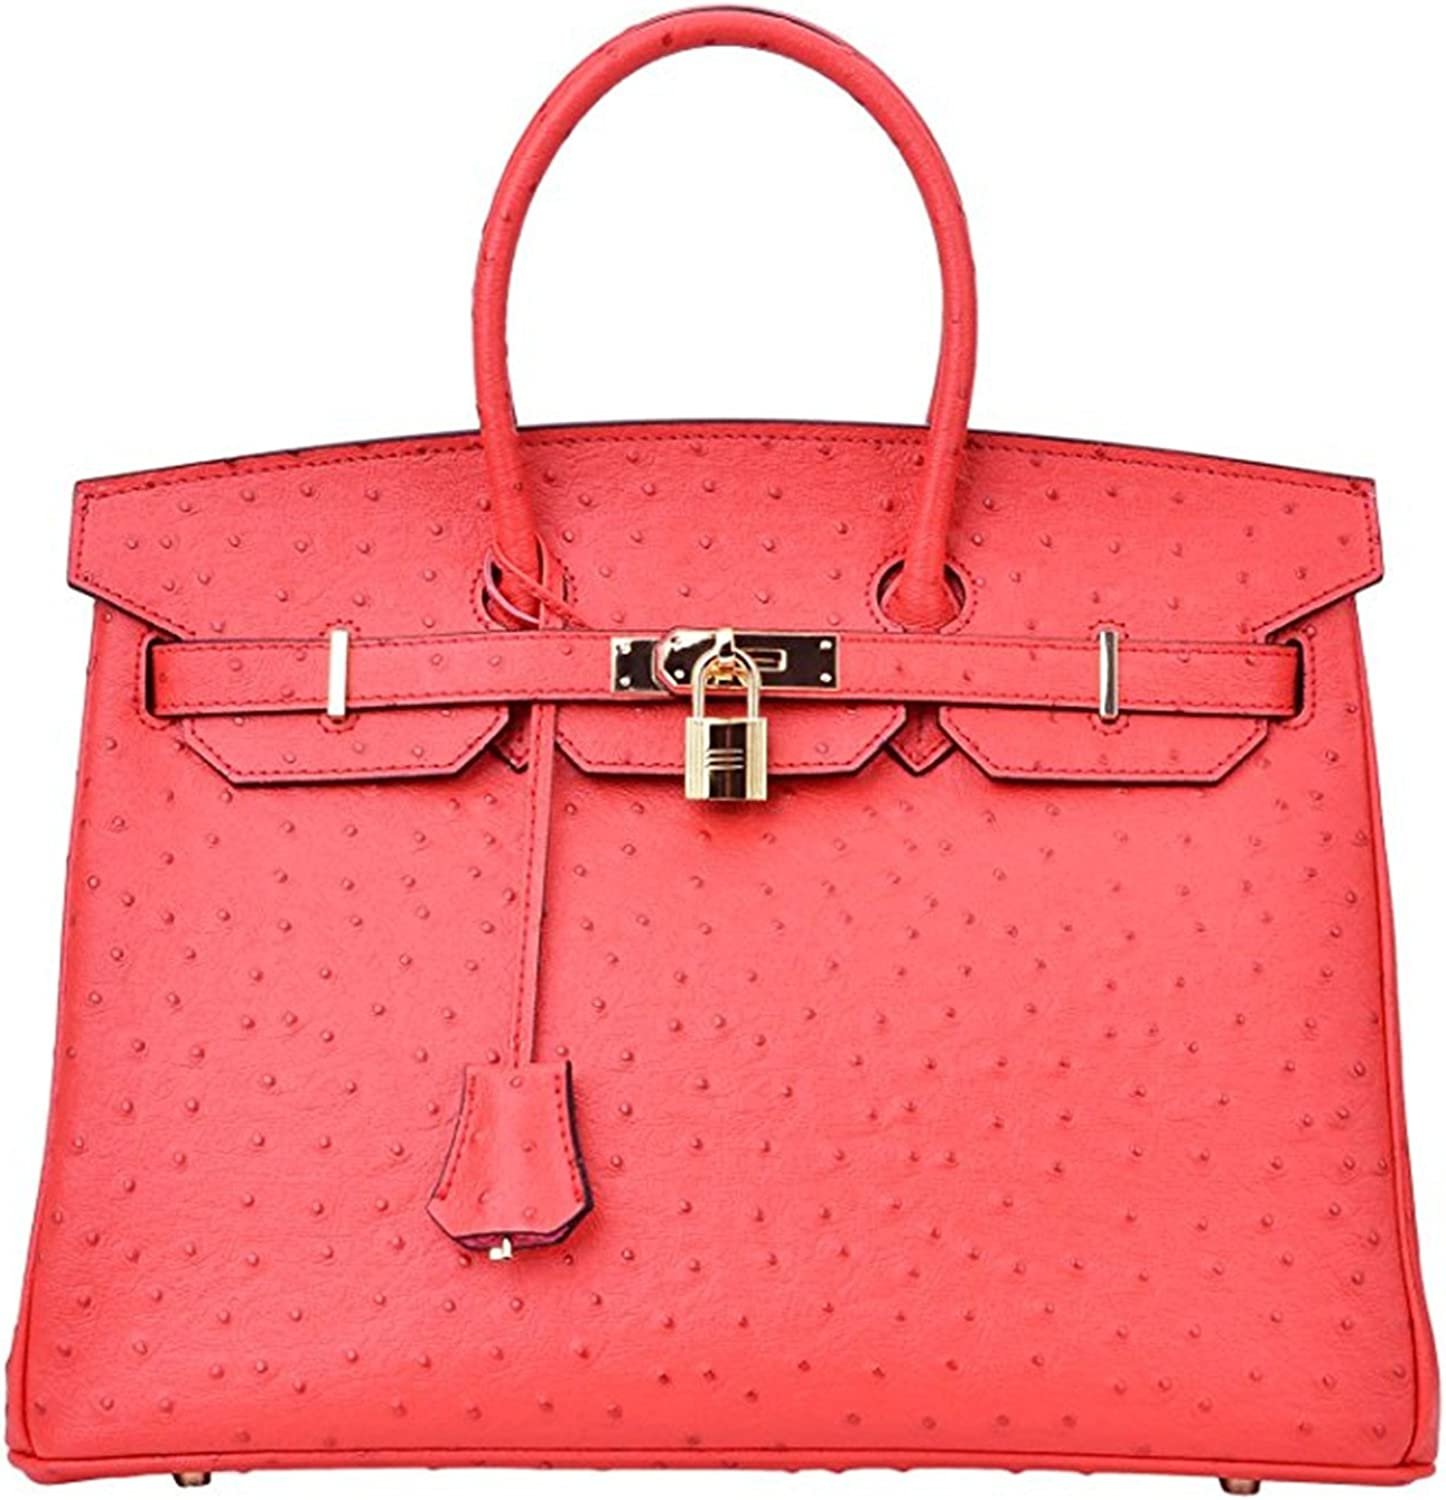 Luxury Women's Genuine Leather Embossed Ostrich Top Handle Padlock Handbags Red 30cm